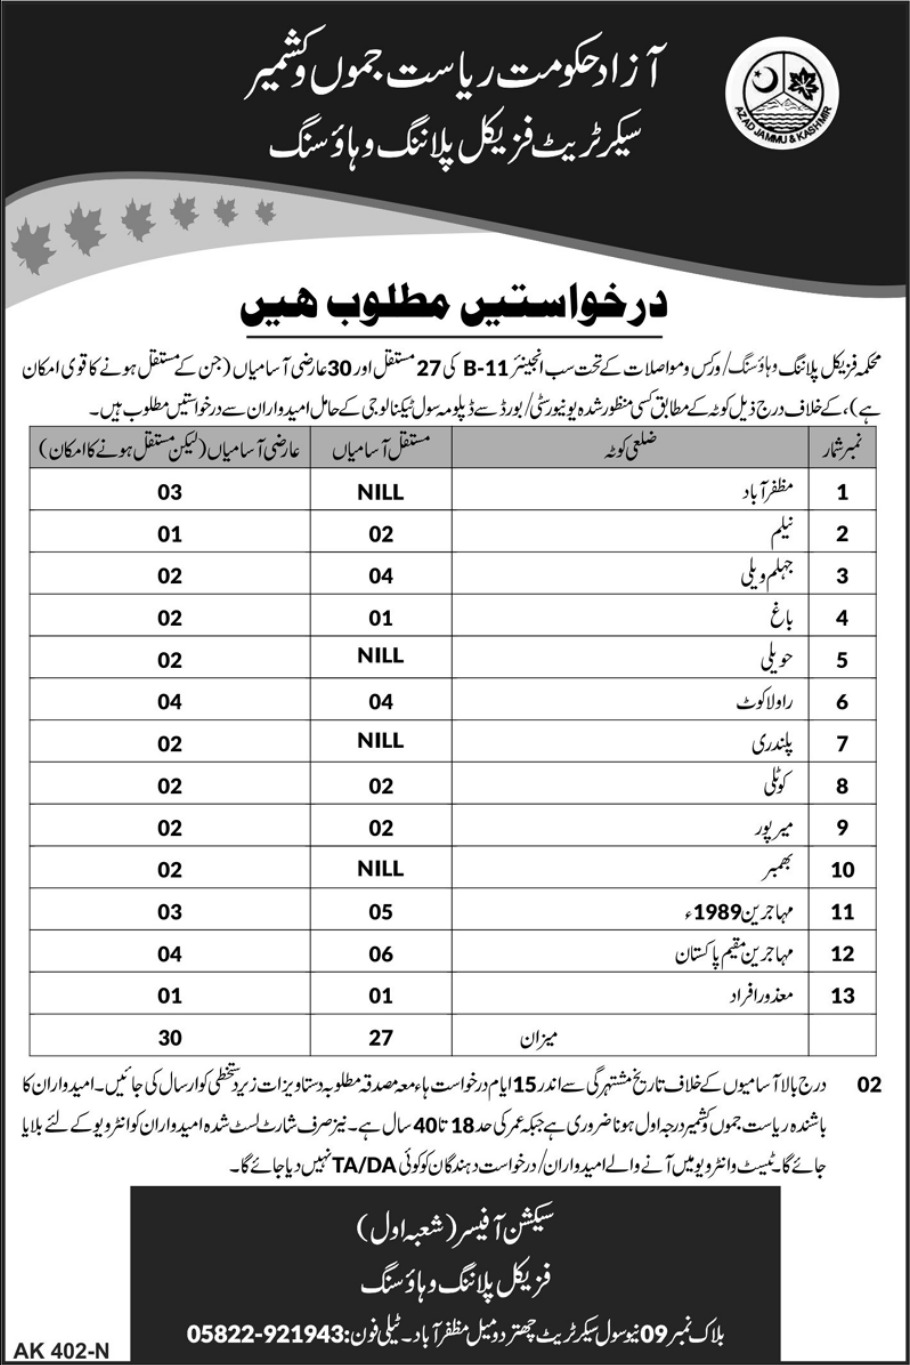 Physical Planning & Housing Department AJK Jobs 2019 Sub Engineer Latest